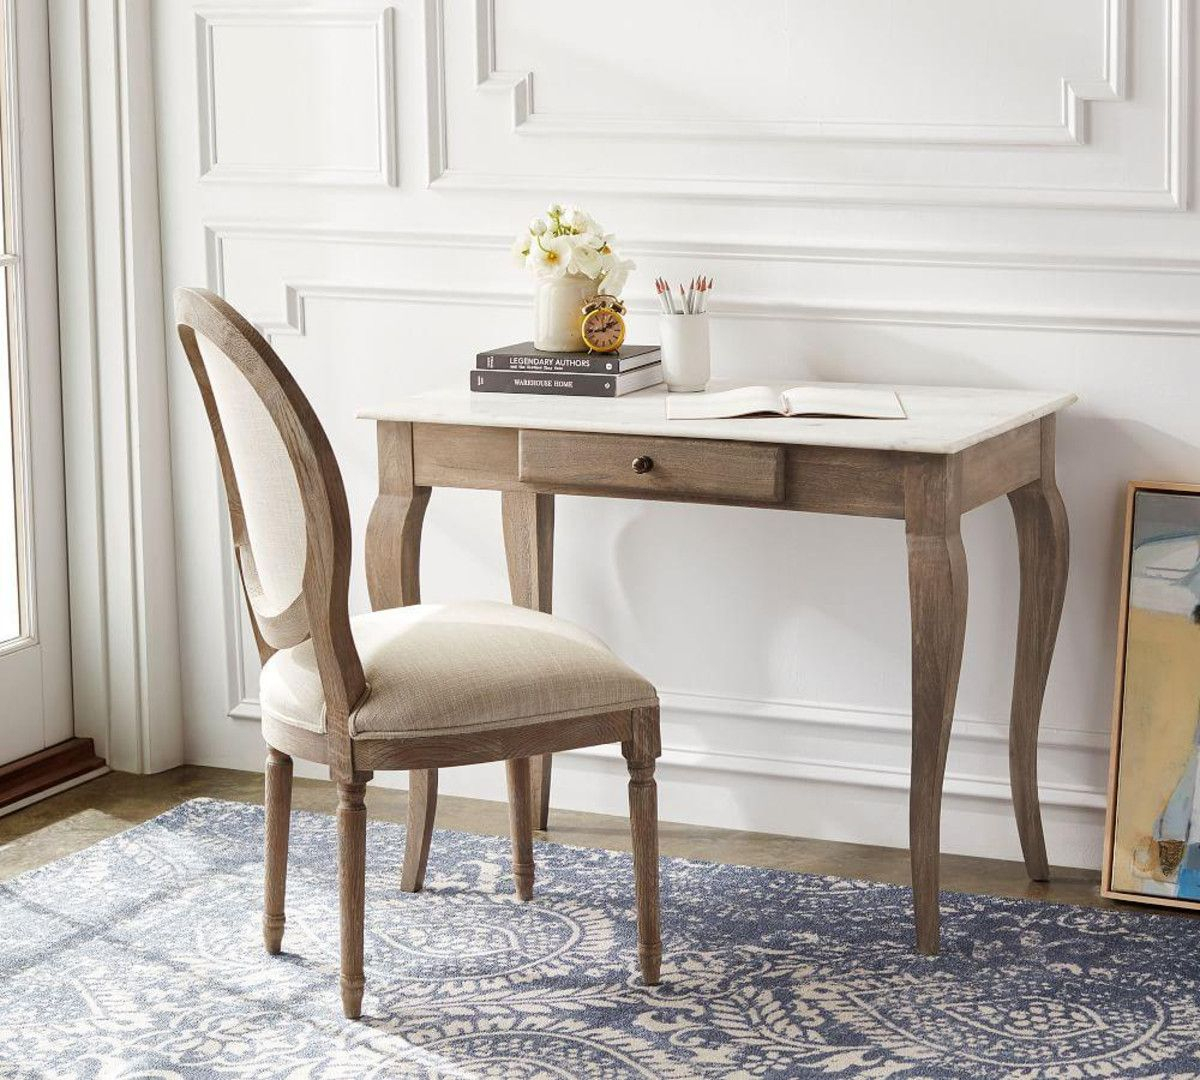 Alexandra Desk | Pottery Barn Ca In 2019 | Marble Desk Regarding Most Recent Alexandra Round Marble Pedestal Dining Tables (Image 3 of 25)